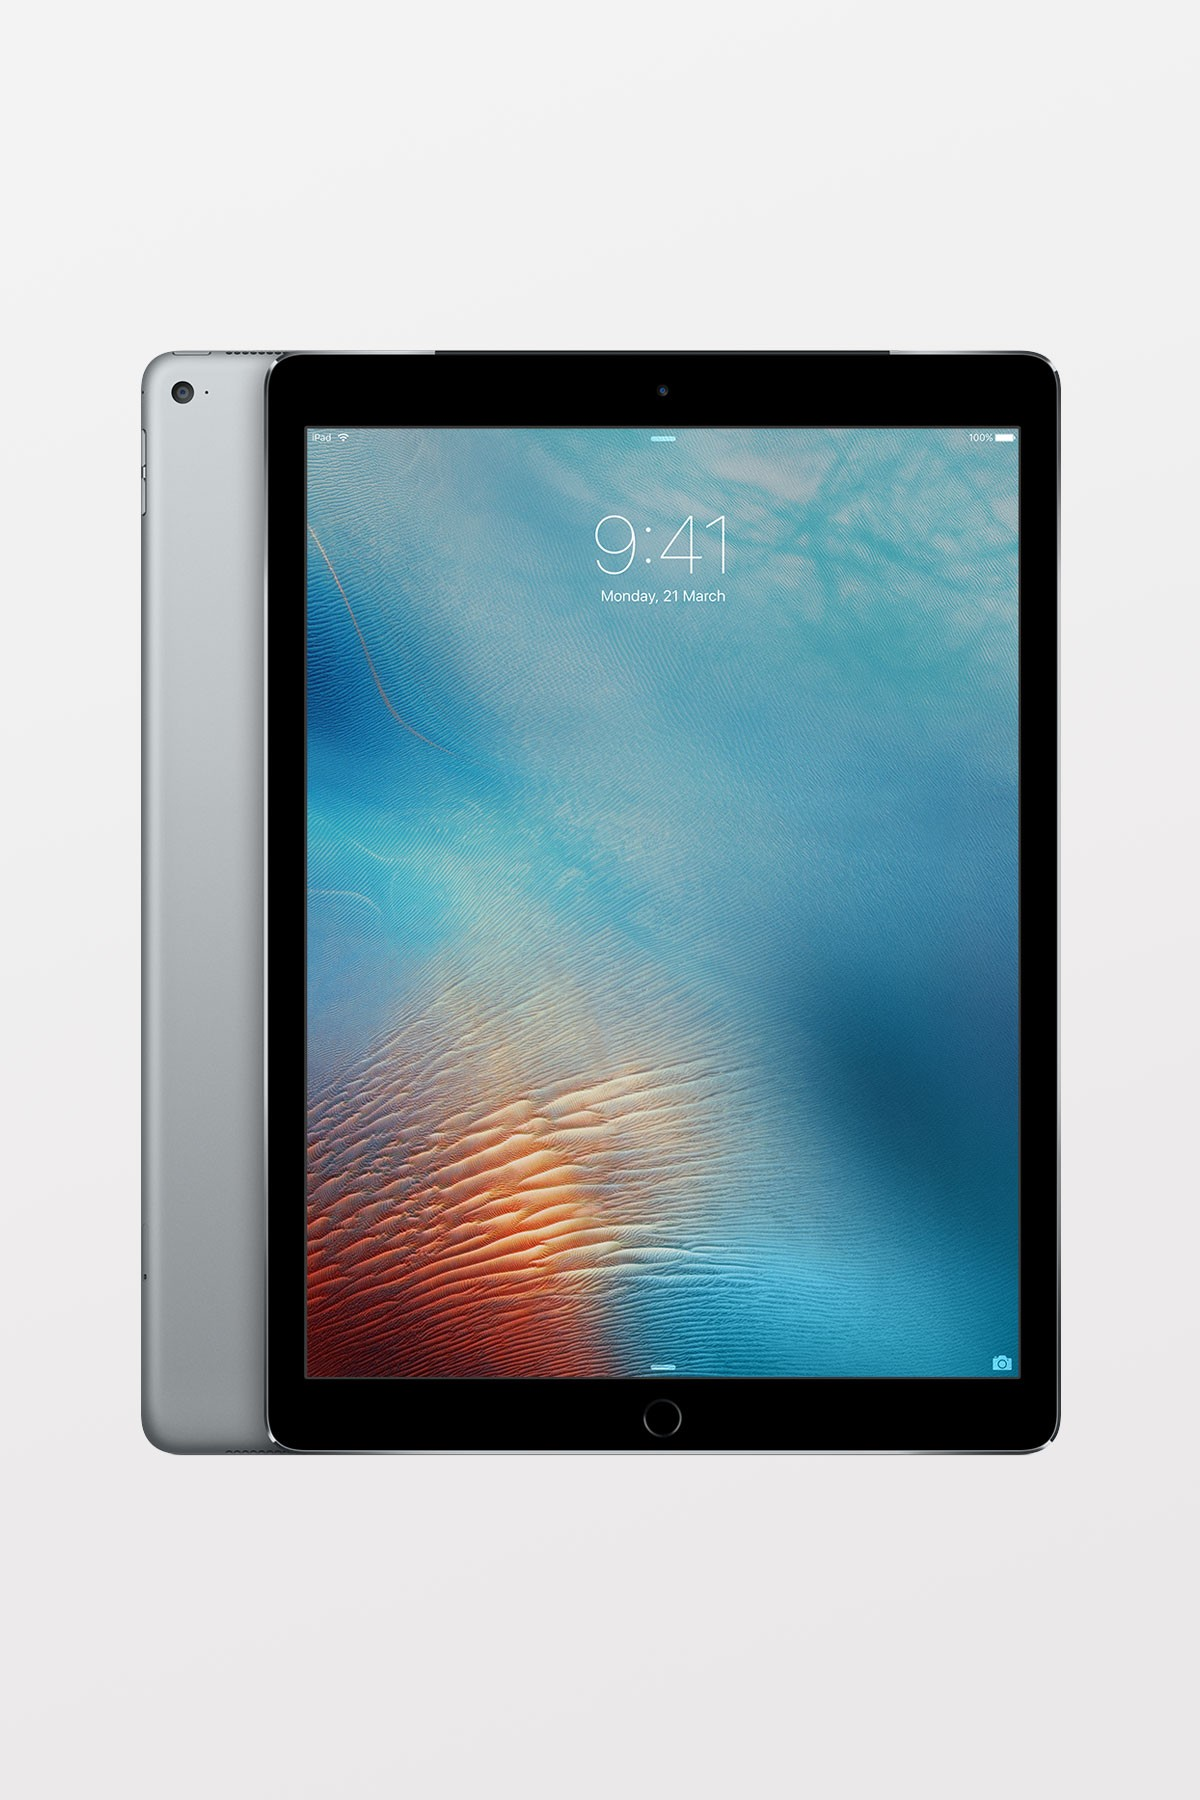 Apple iPad Pro 12.9-inch Wi-Fi 64GB - Space Grey